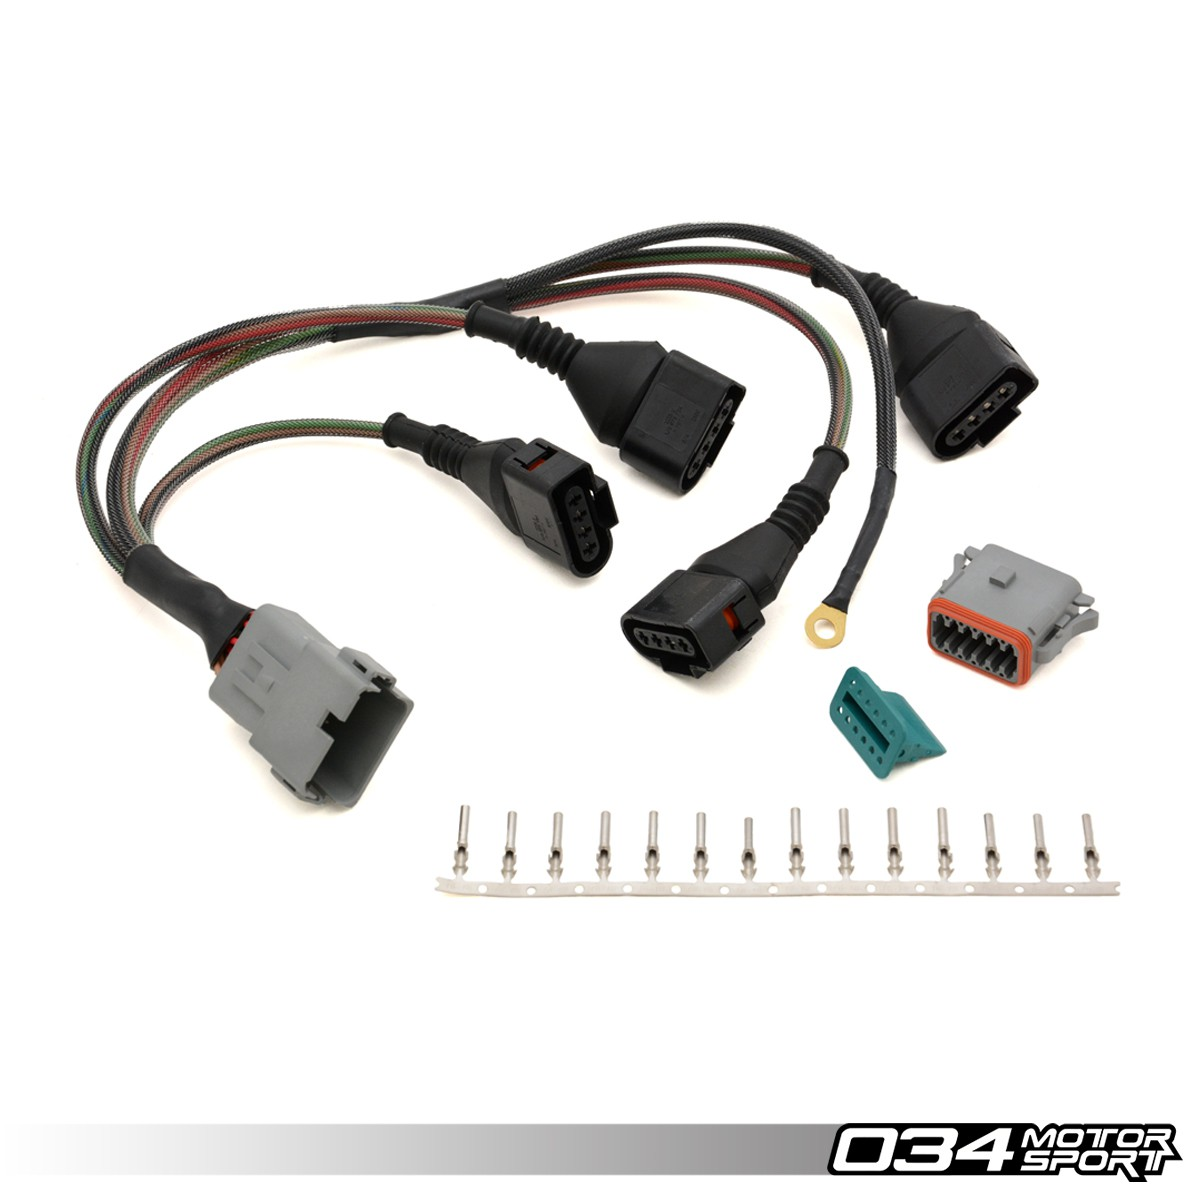 repair update harness audi volkswagen 18t with 4 wire coils 034motorsport 034 701 0004 2 repair update harness, audi volkswagen 1 8t with 4 wire coils  at aneh.co